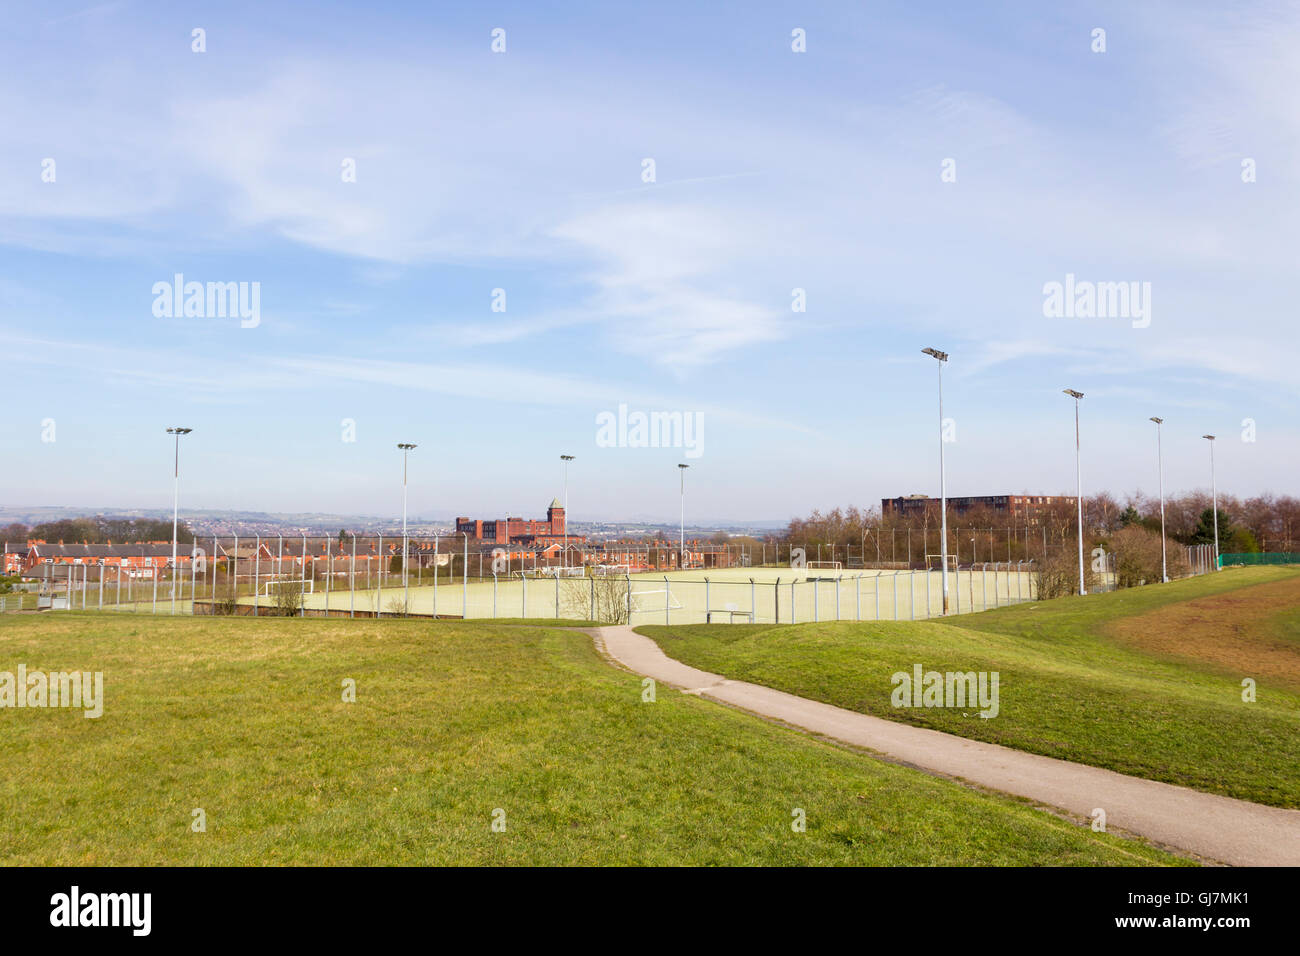 All-weather floodlit sports pitch at Harper Green playing fields, Farnworth, Lancashire. - Stock Image